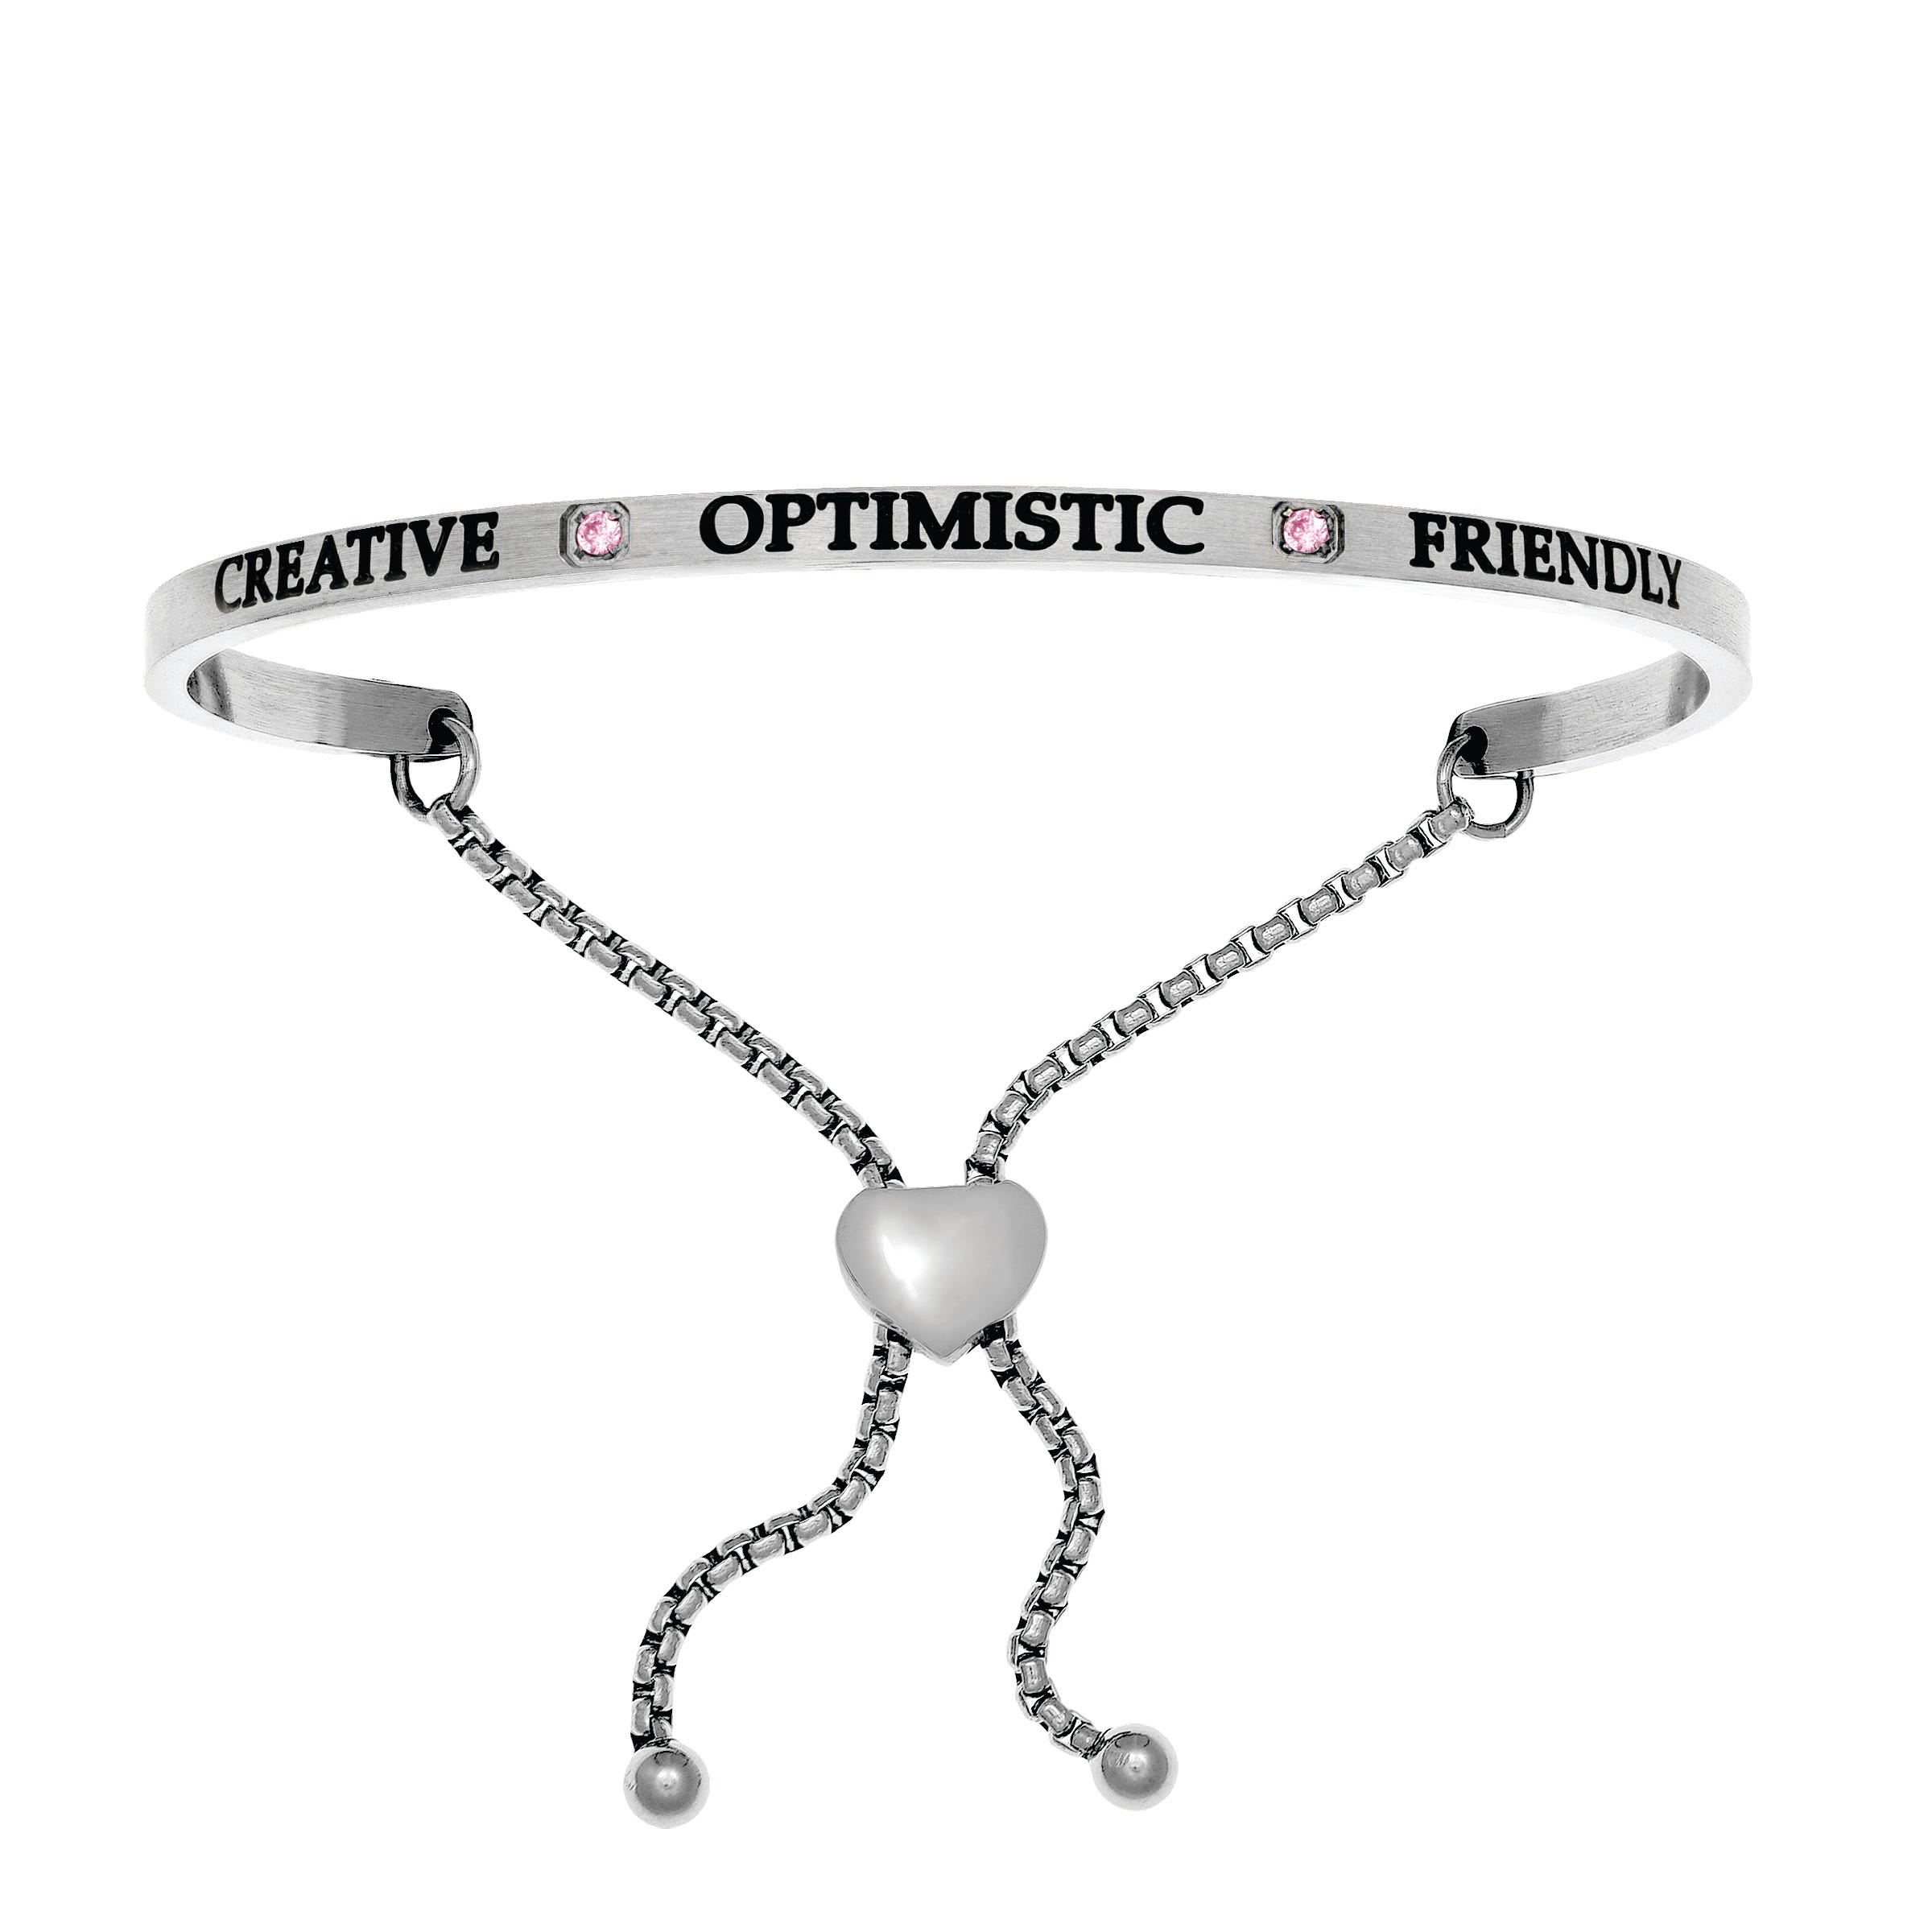 Creative & Optimistic October. Intuitions Bolo Bracelet in White Stainless Steel